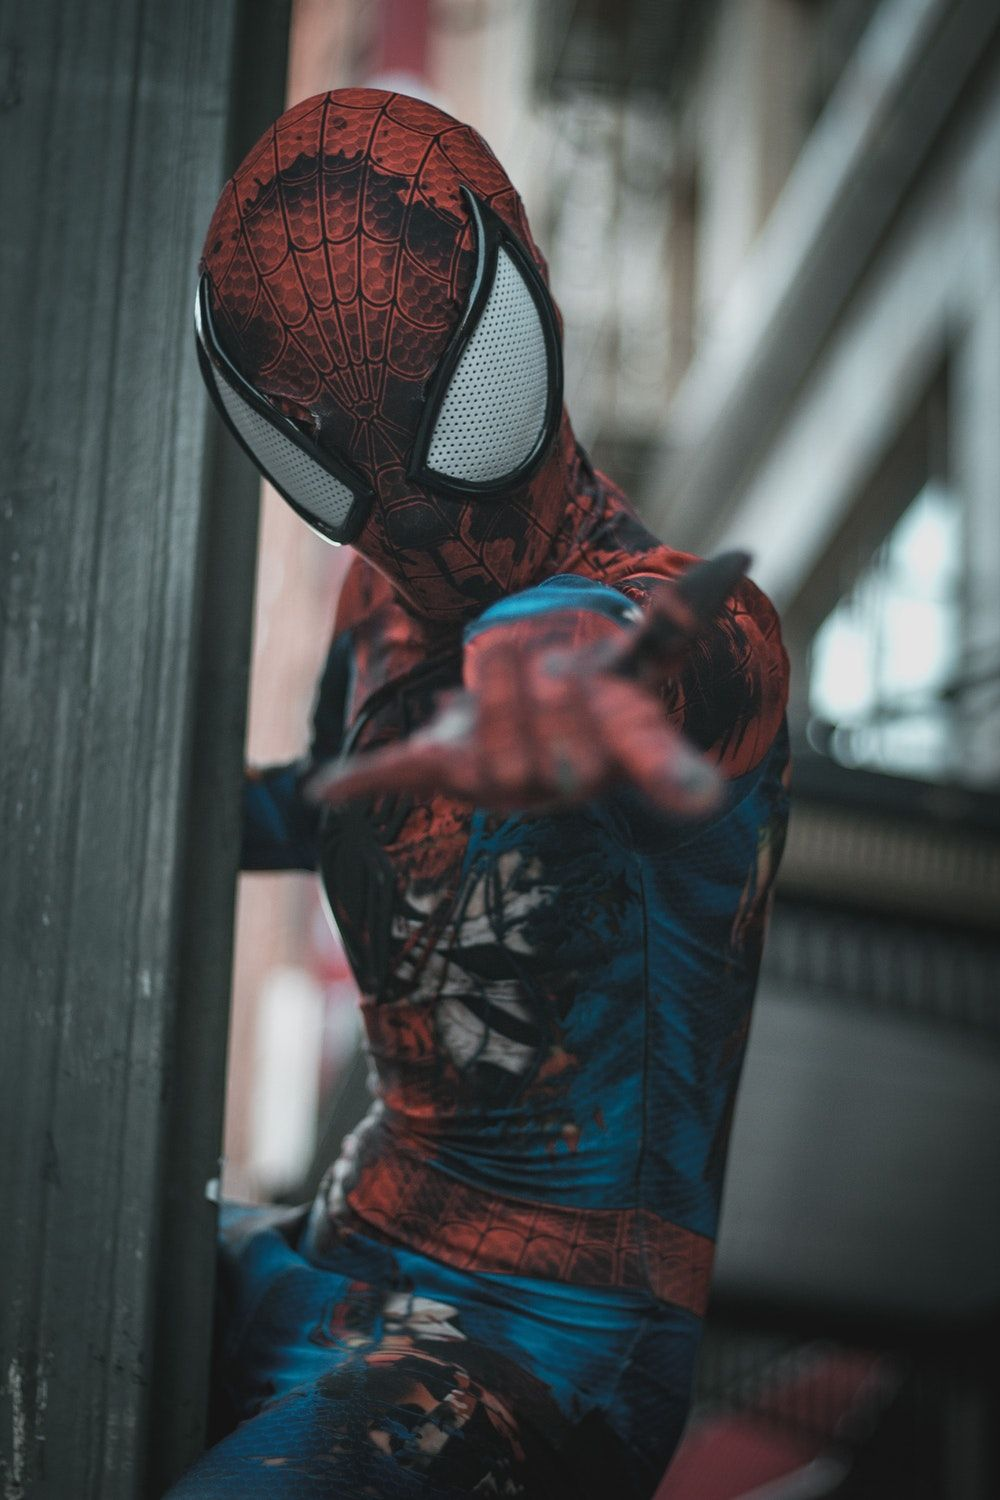 1000x1500 500+ Marvel Pictures [HD]   Download Free Images on Unsplash